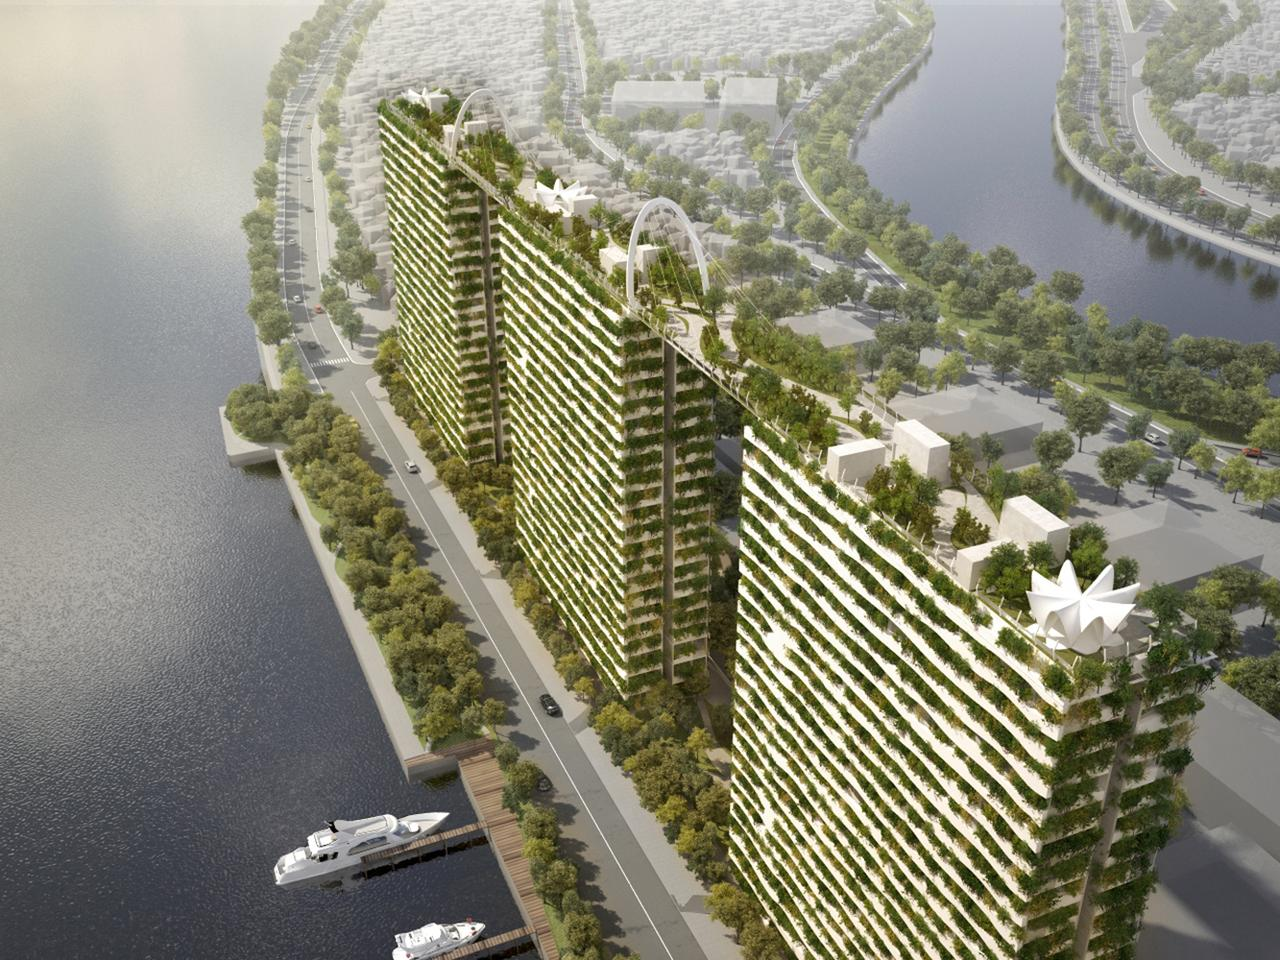 Designed for developers Phuc Khang Corporation, the concept comprises three towers rising to a height of 22 stories